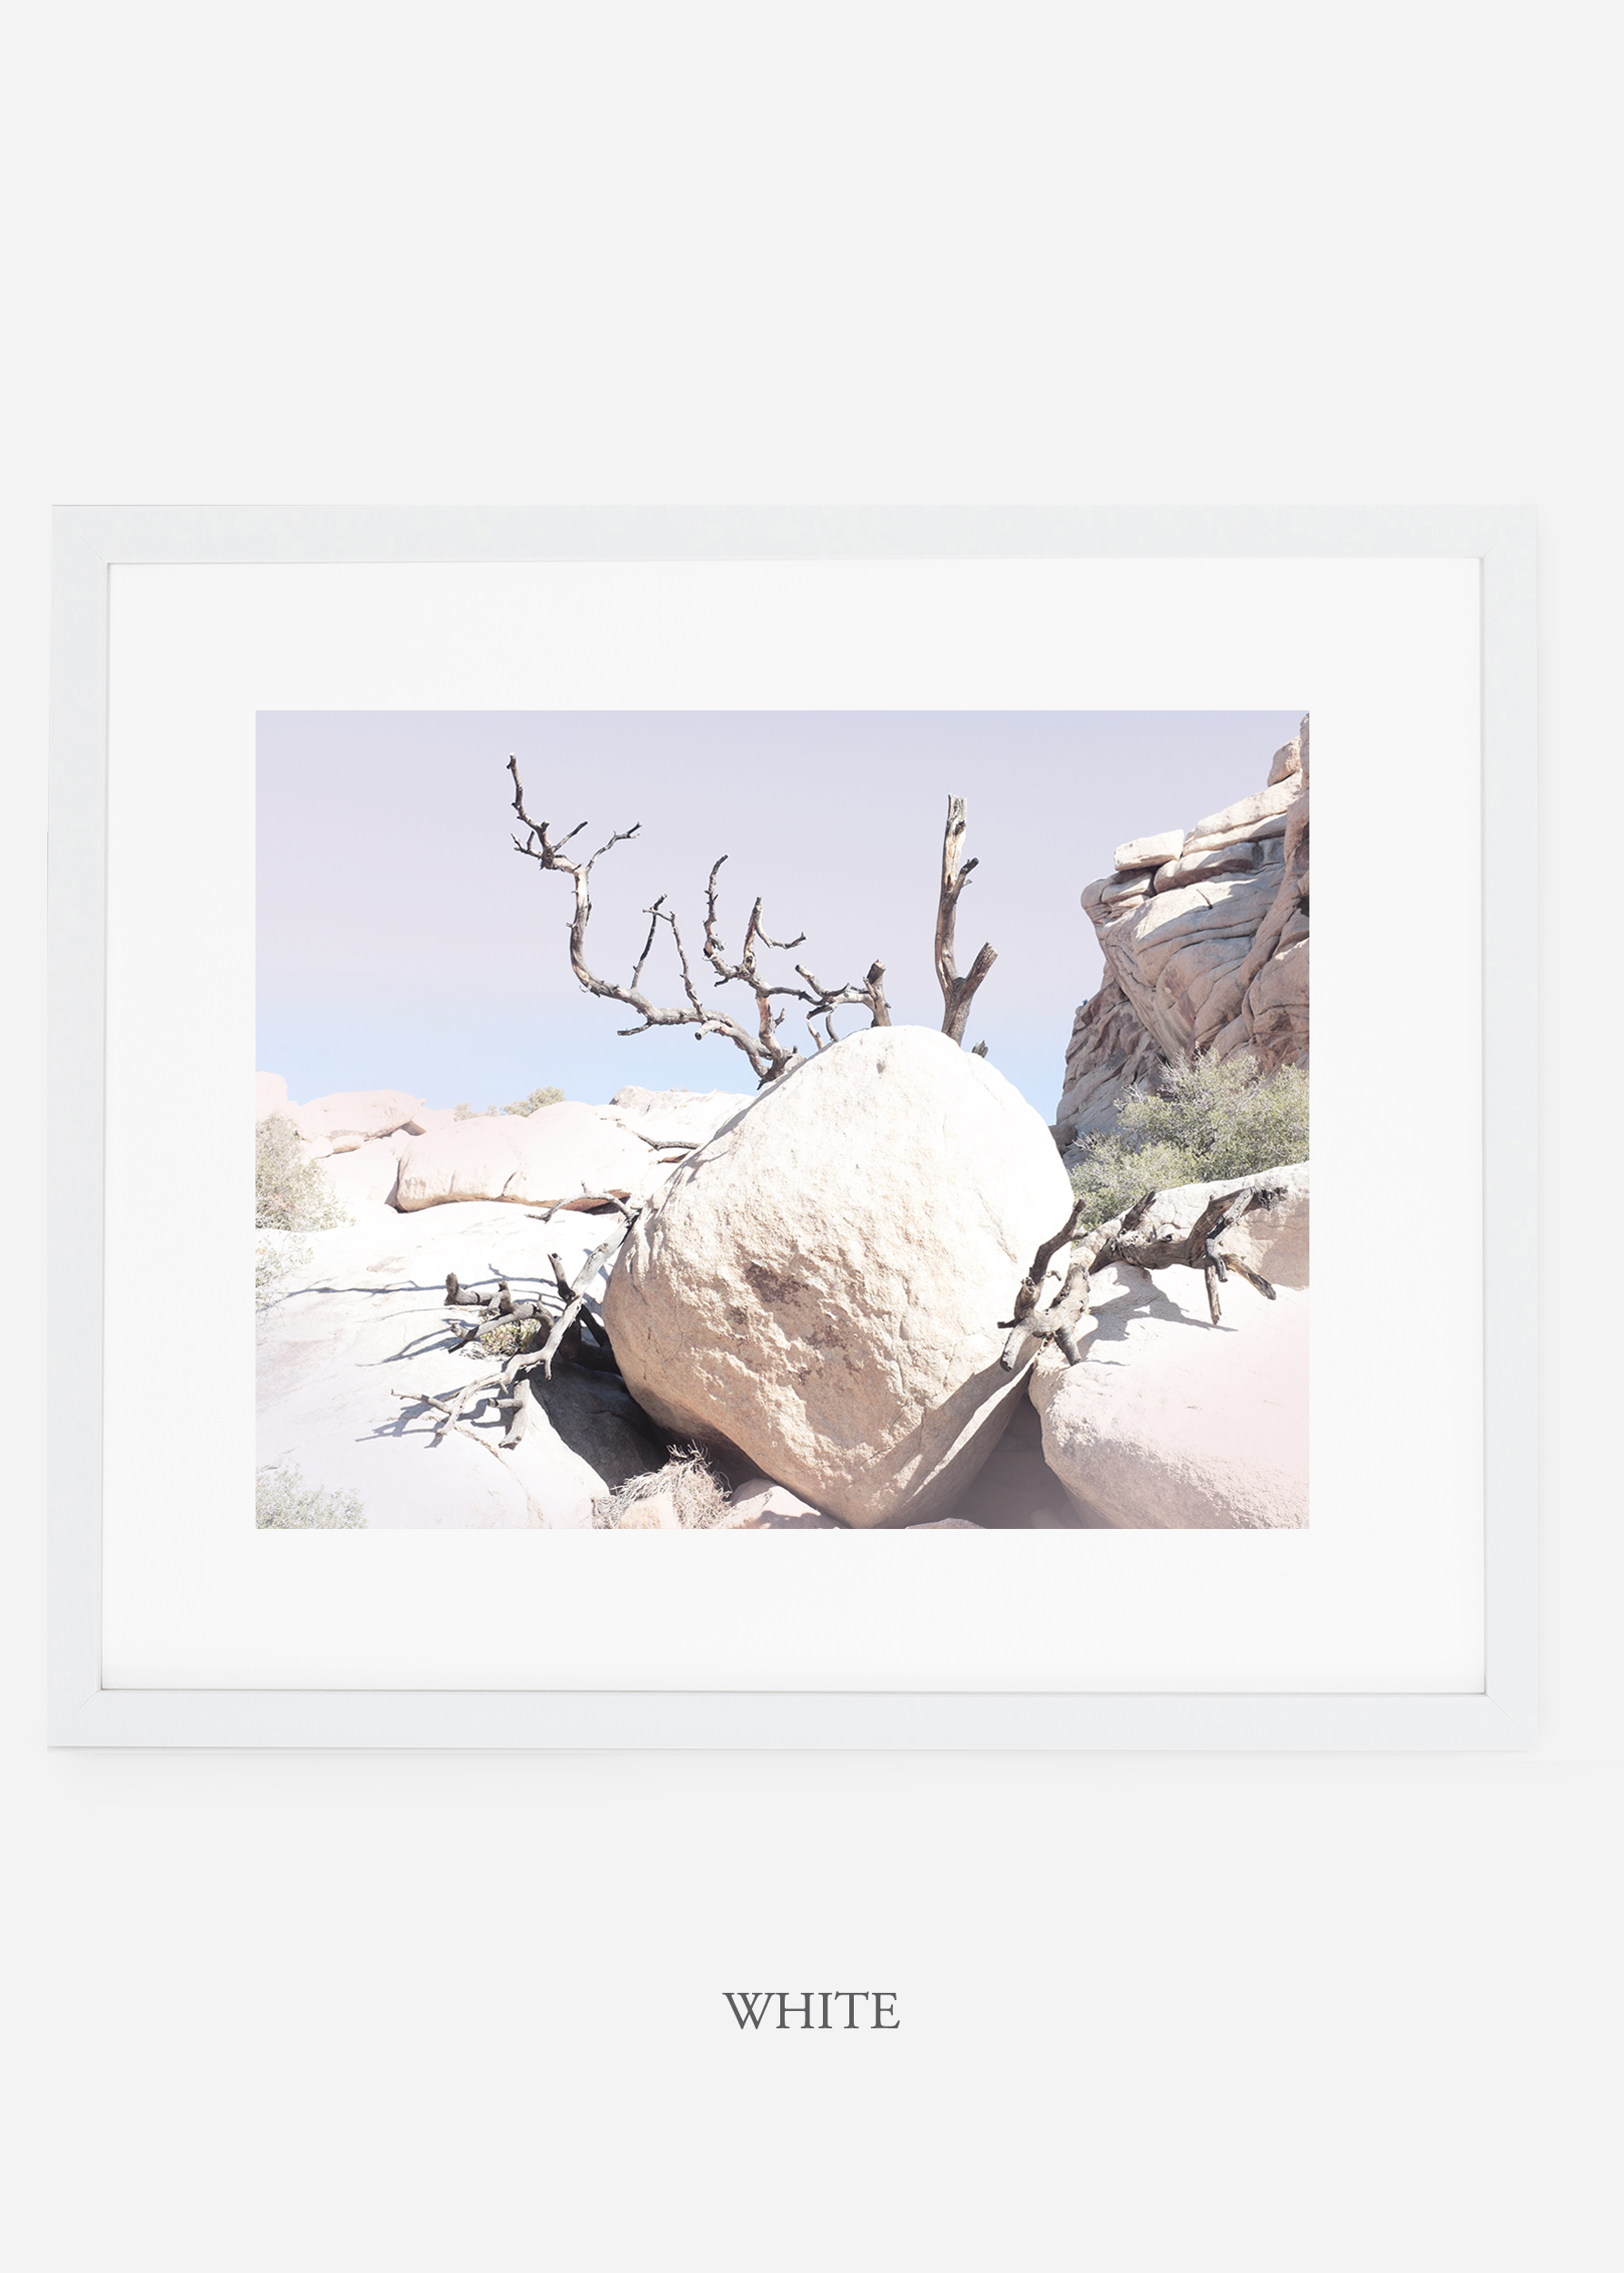 WilderCalifornia_whiteframe_JoshuaTree_No.17_interiordesign_prints_art.jpg